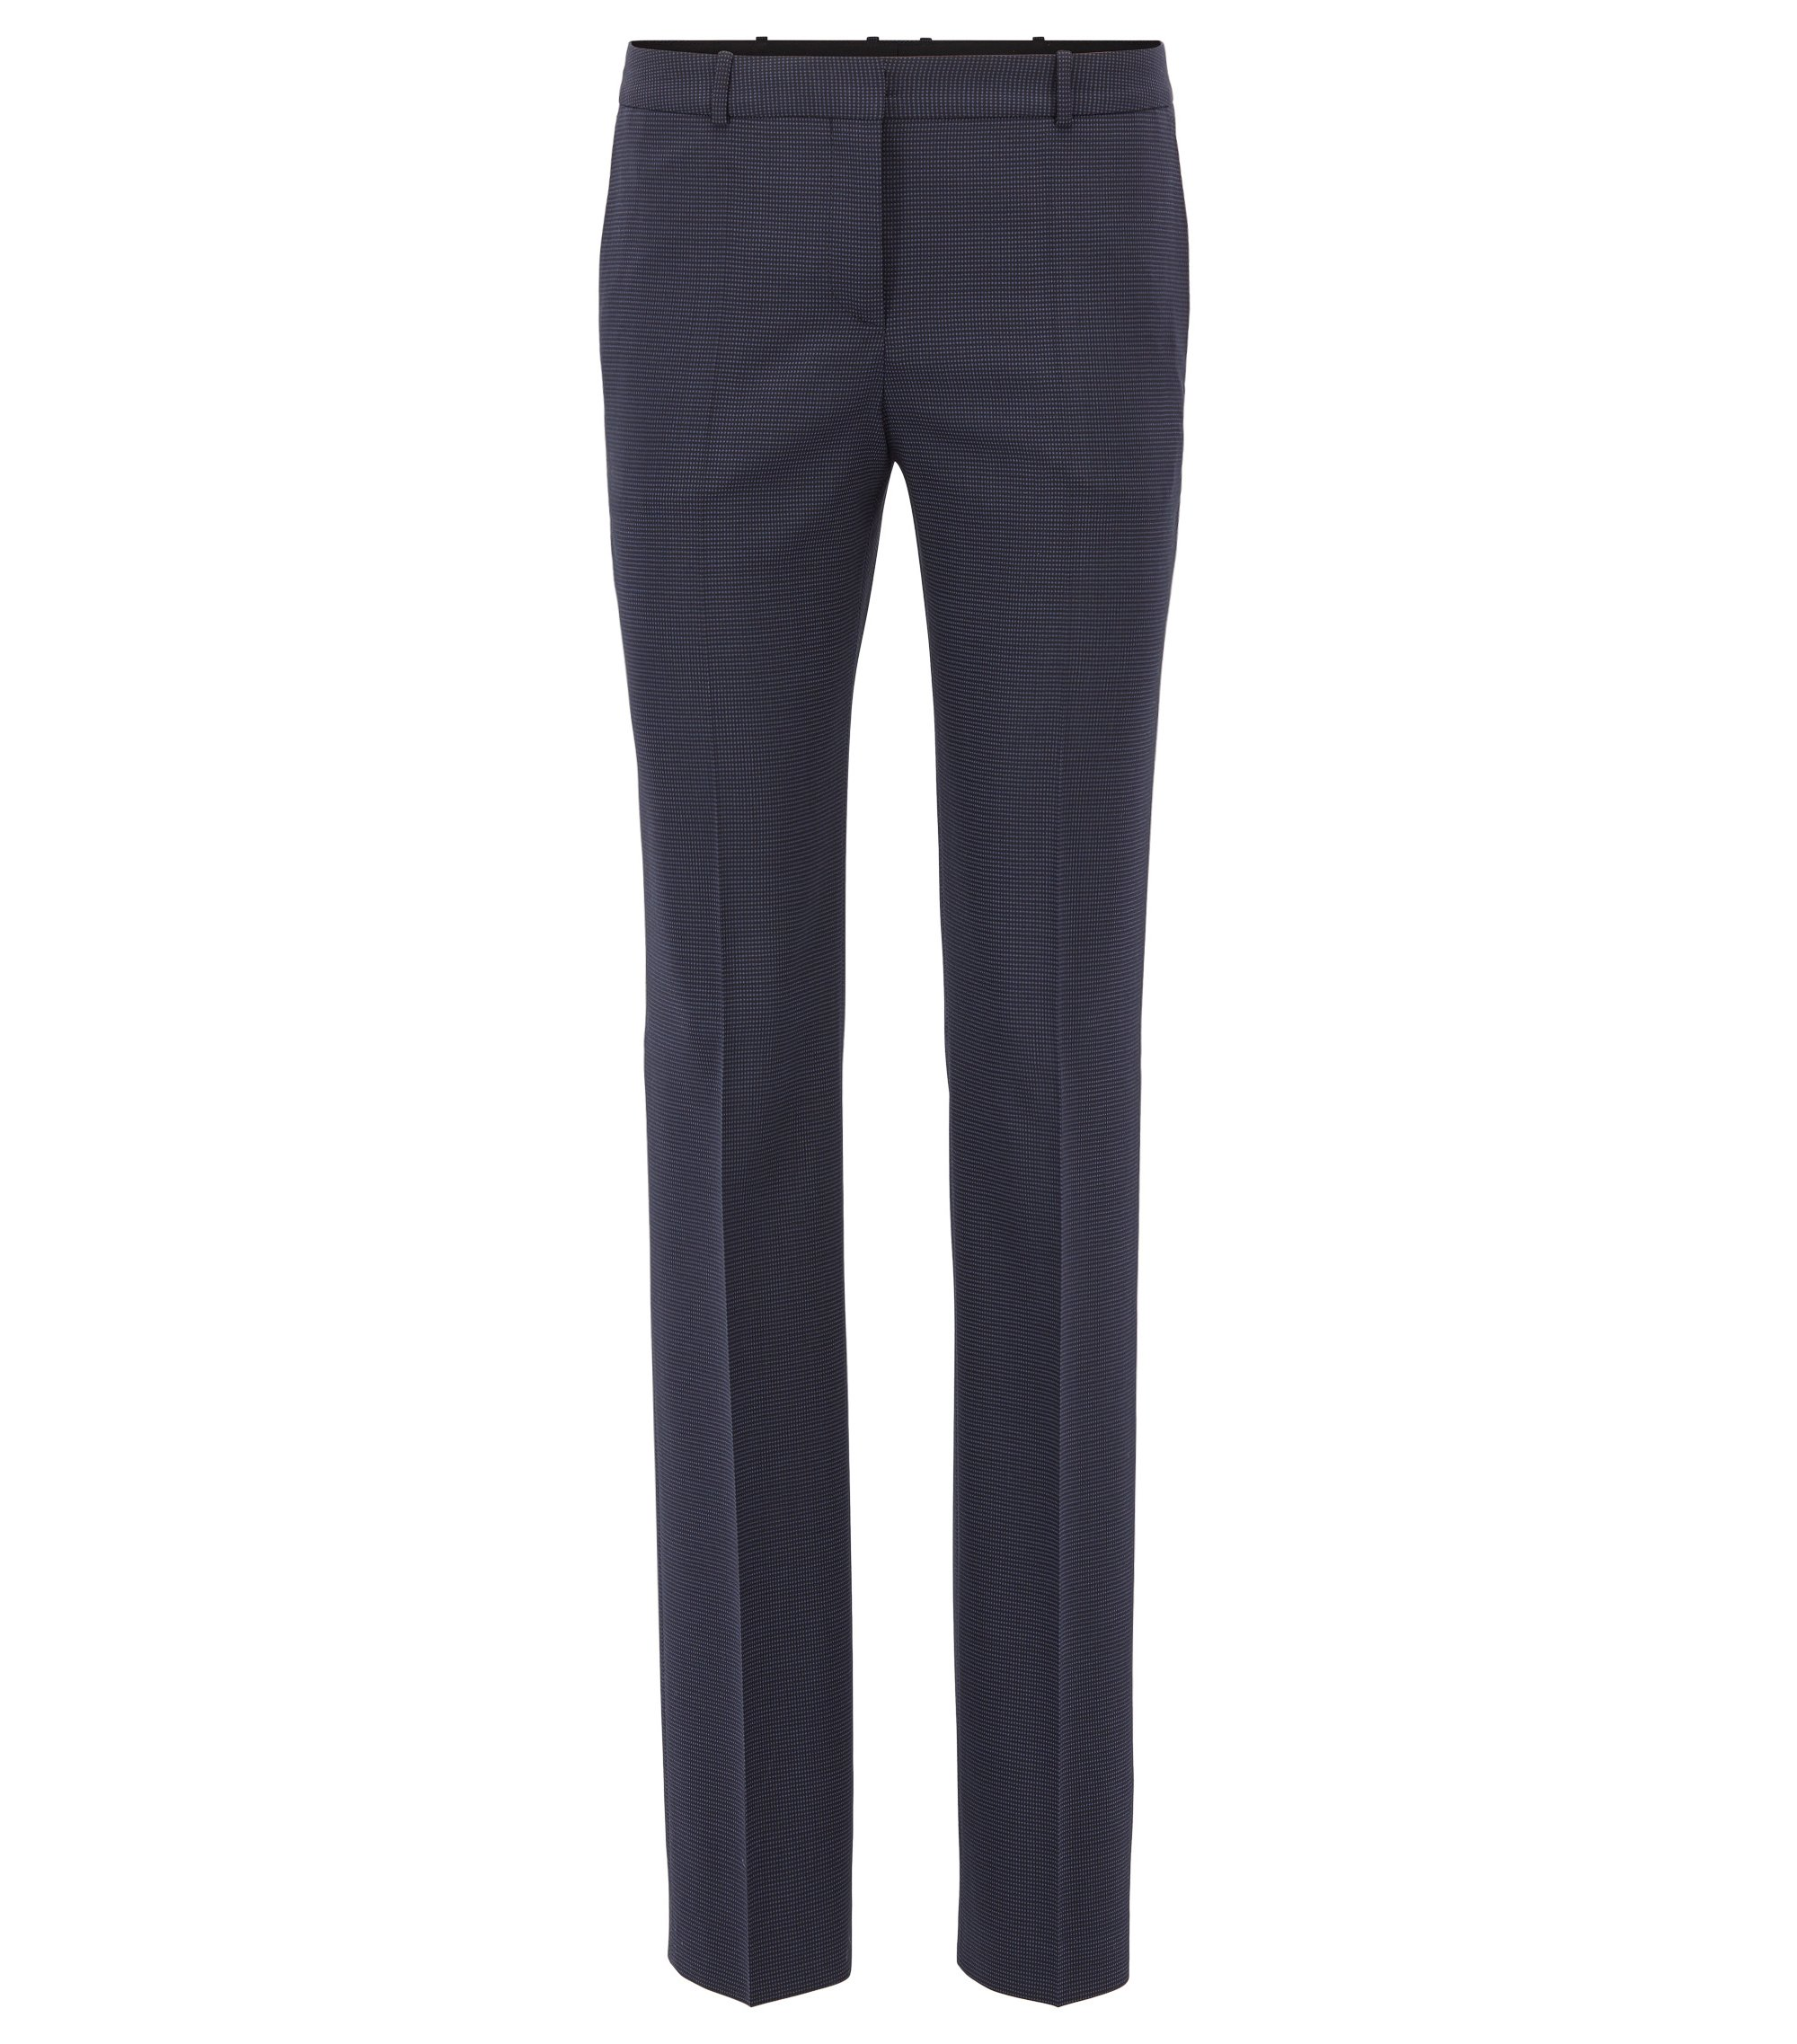 Regular-fit tailored trousers in stretch virgin wool, Patterned